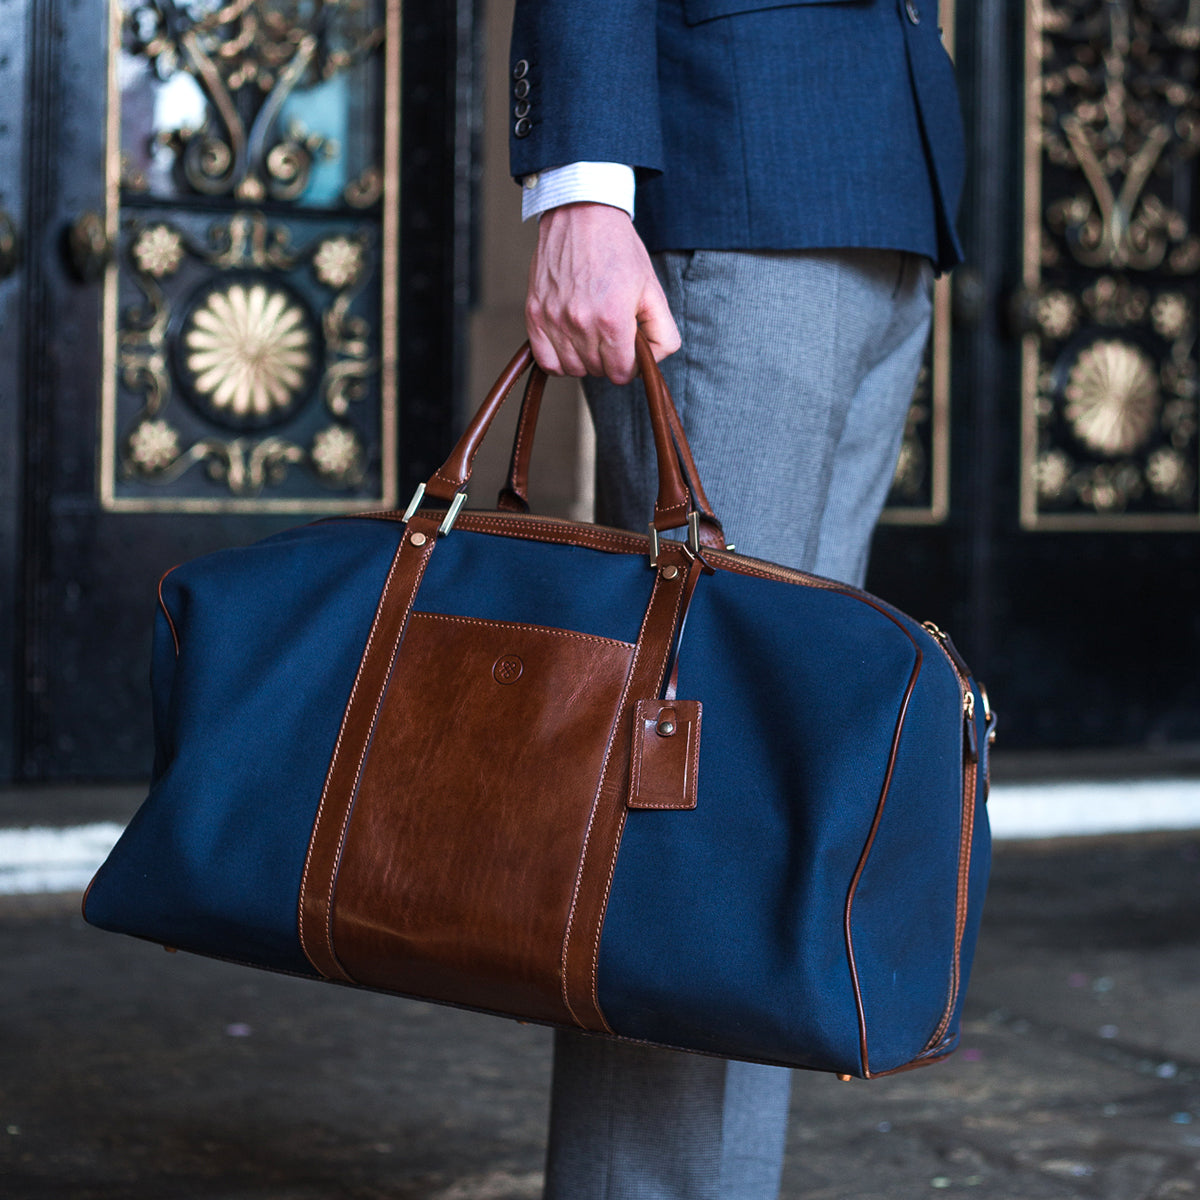 Image 6 of the Large 'Giovane' Rich Navy and Tan Holdall